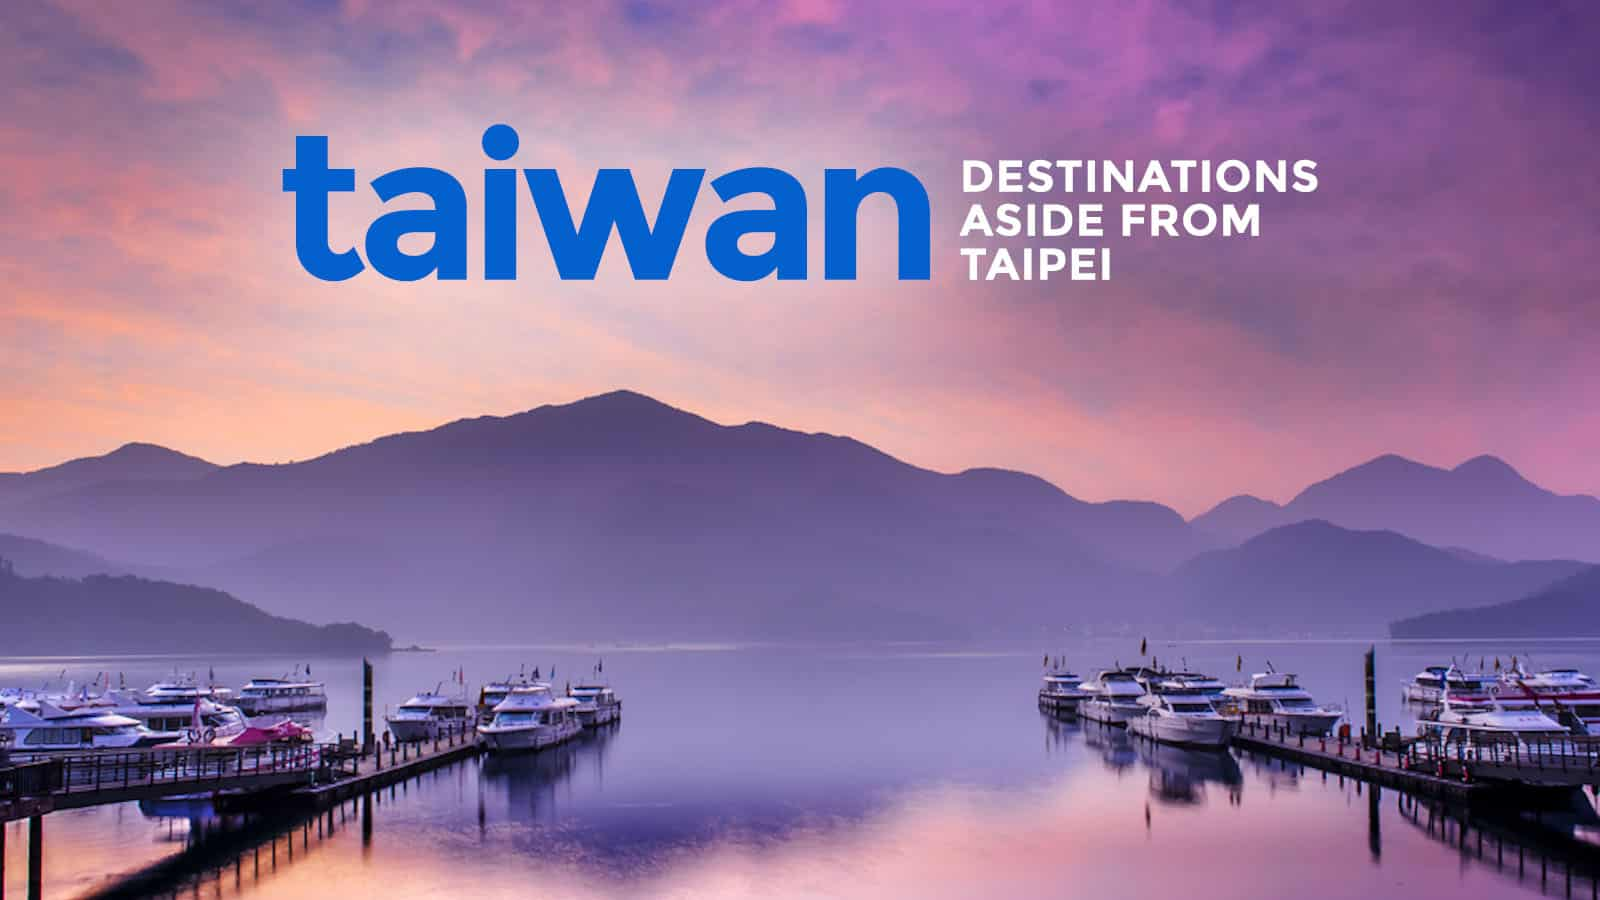 6 Destinations to Visit in TAIWAN Other Than Taipei